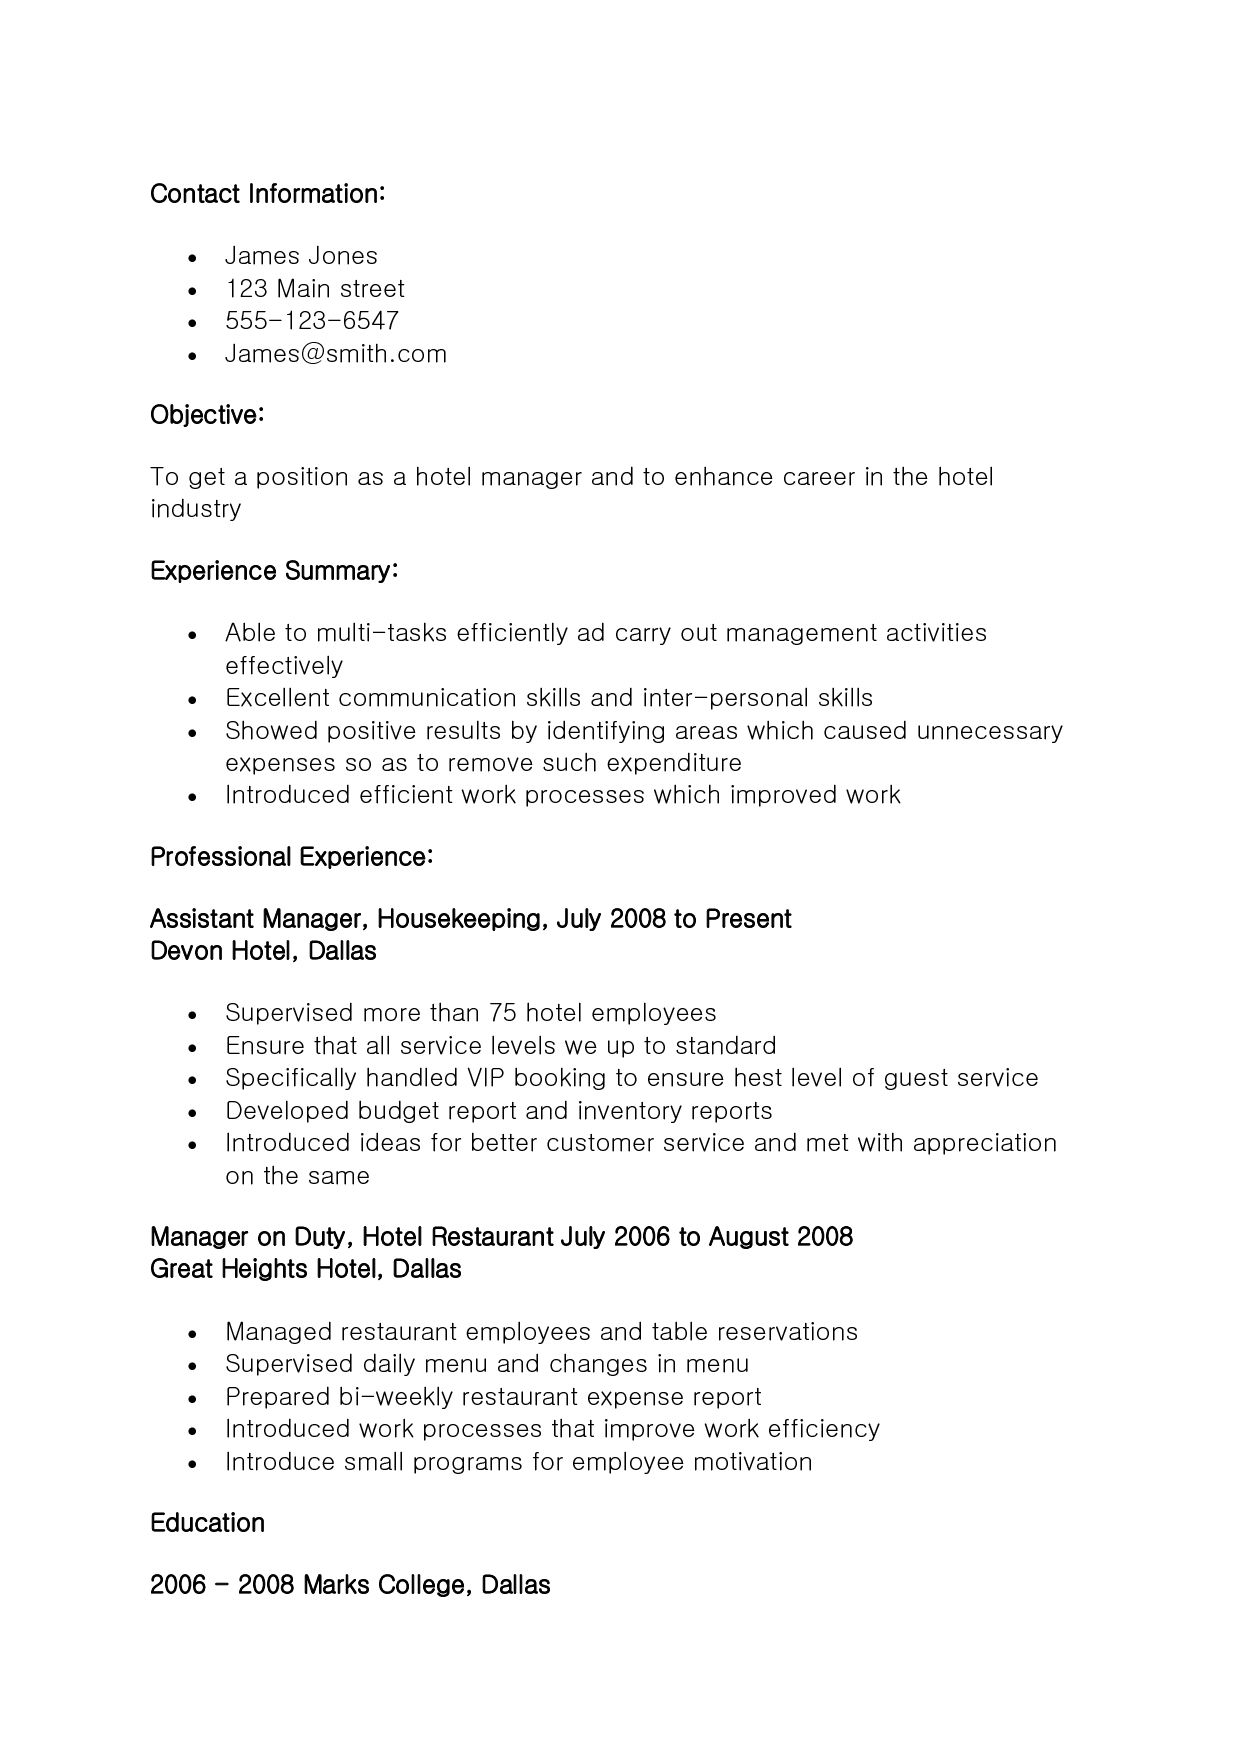 74 beautiful image of resume objective statement examples